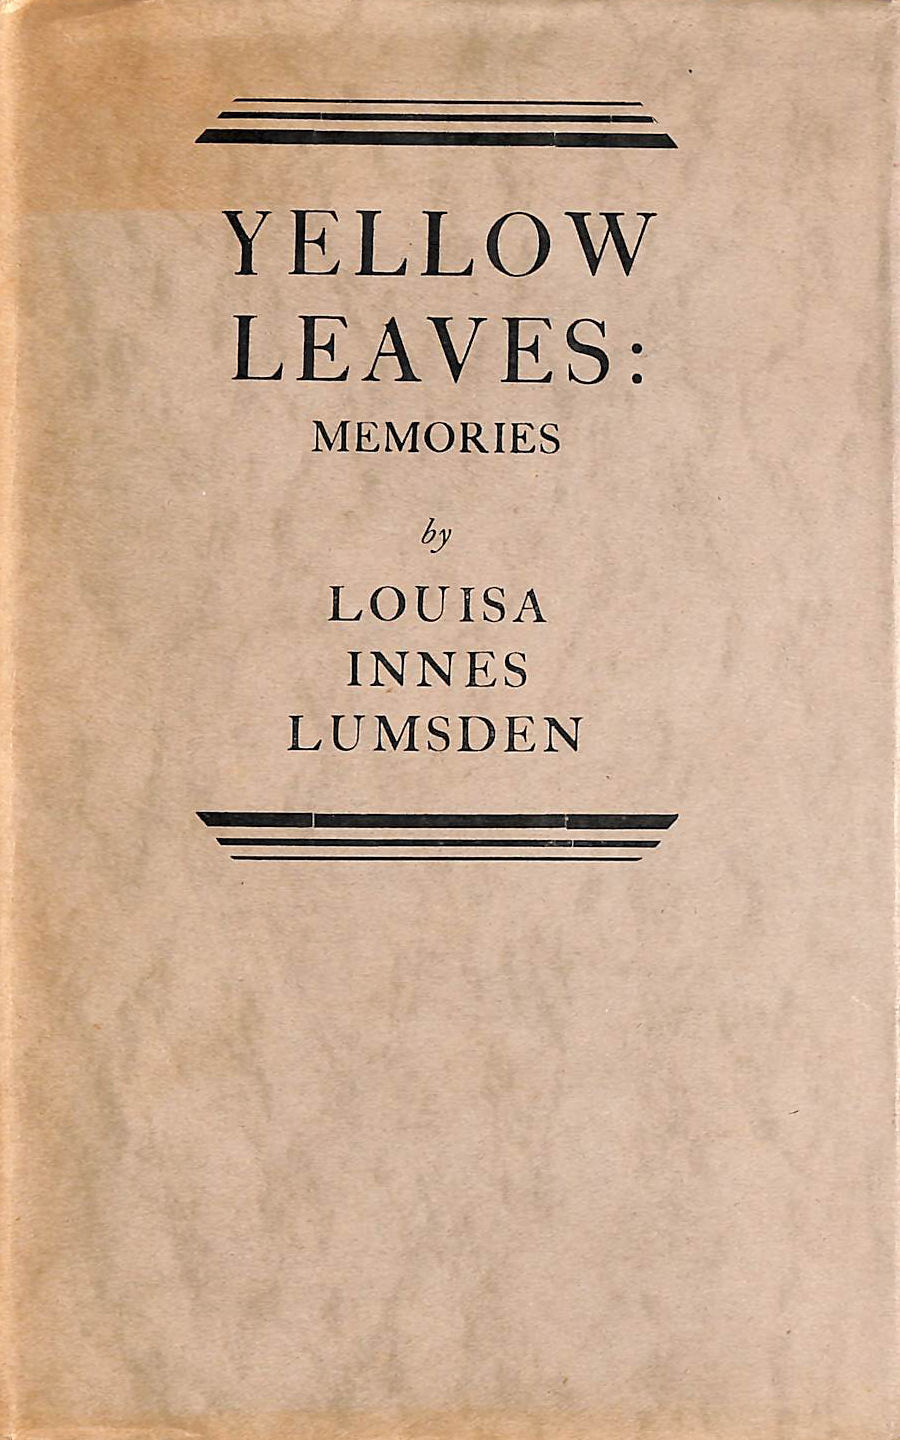 Image for Yellow leaves: Memories of a long life